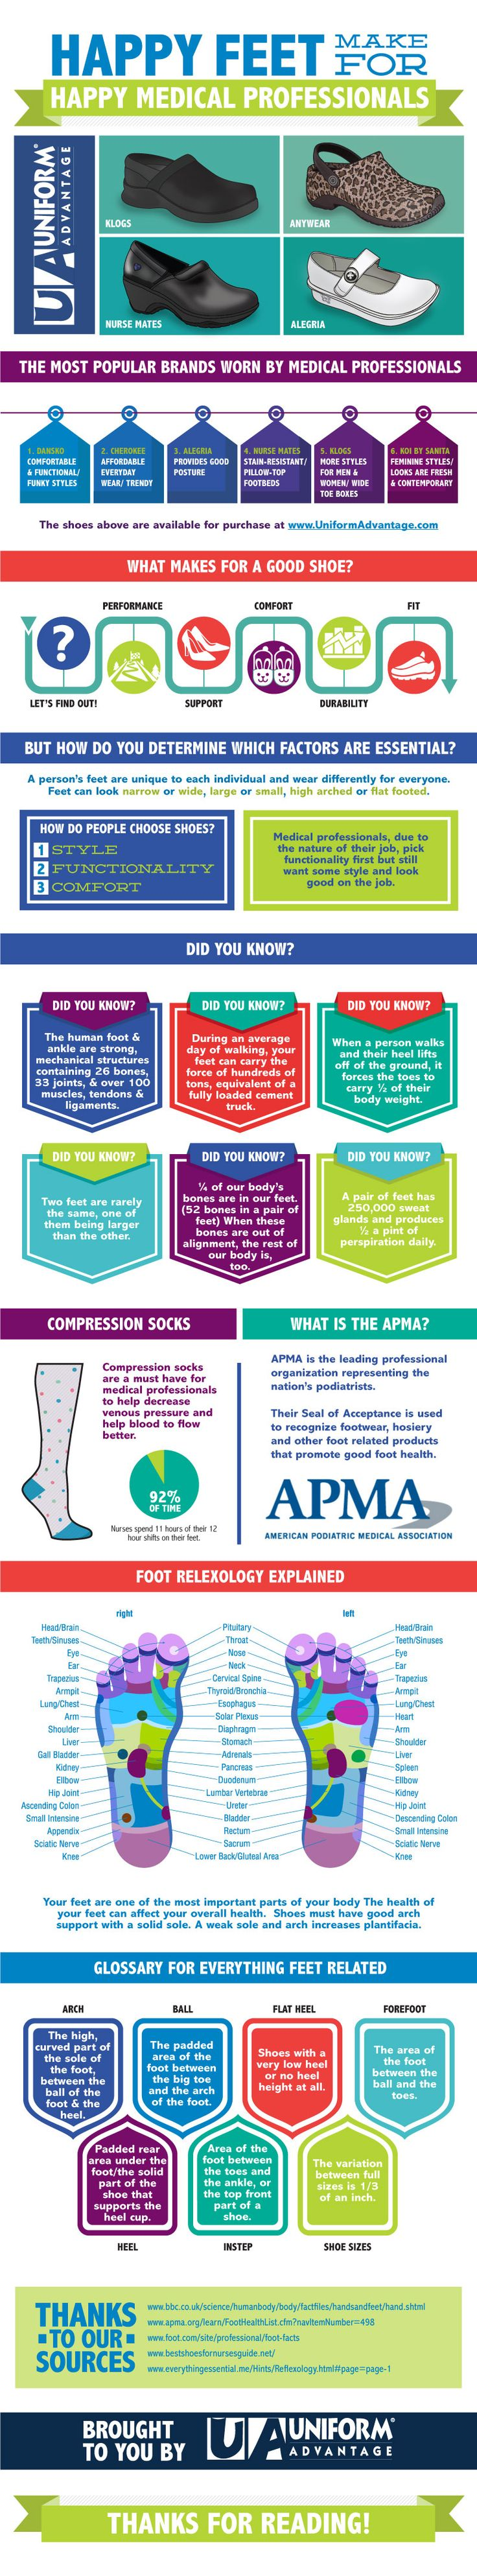 Happy Feet Make For Happy Medical Professionals #infographic #Health #Shoes…